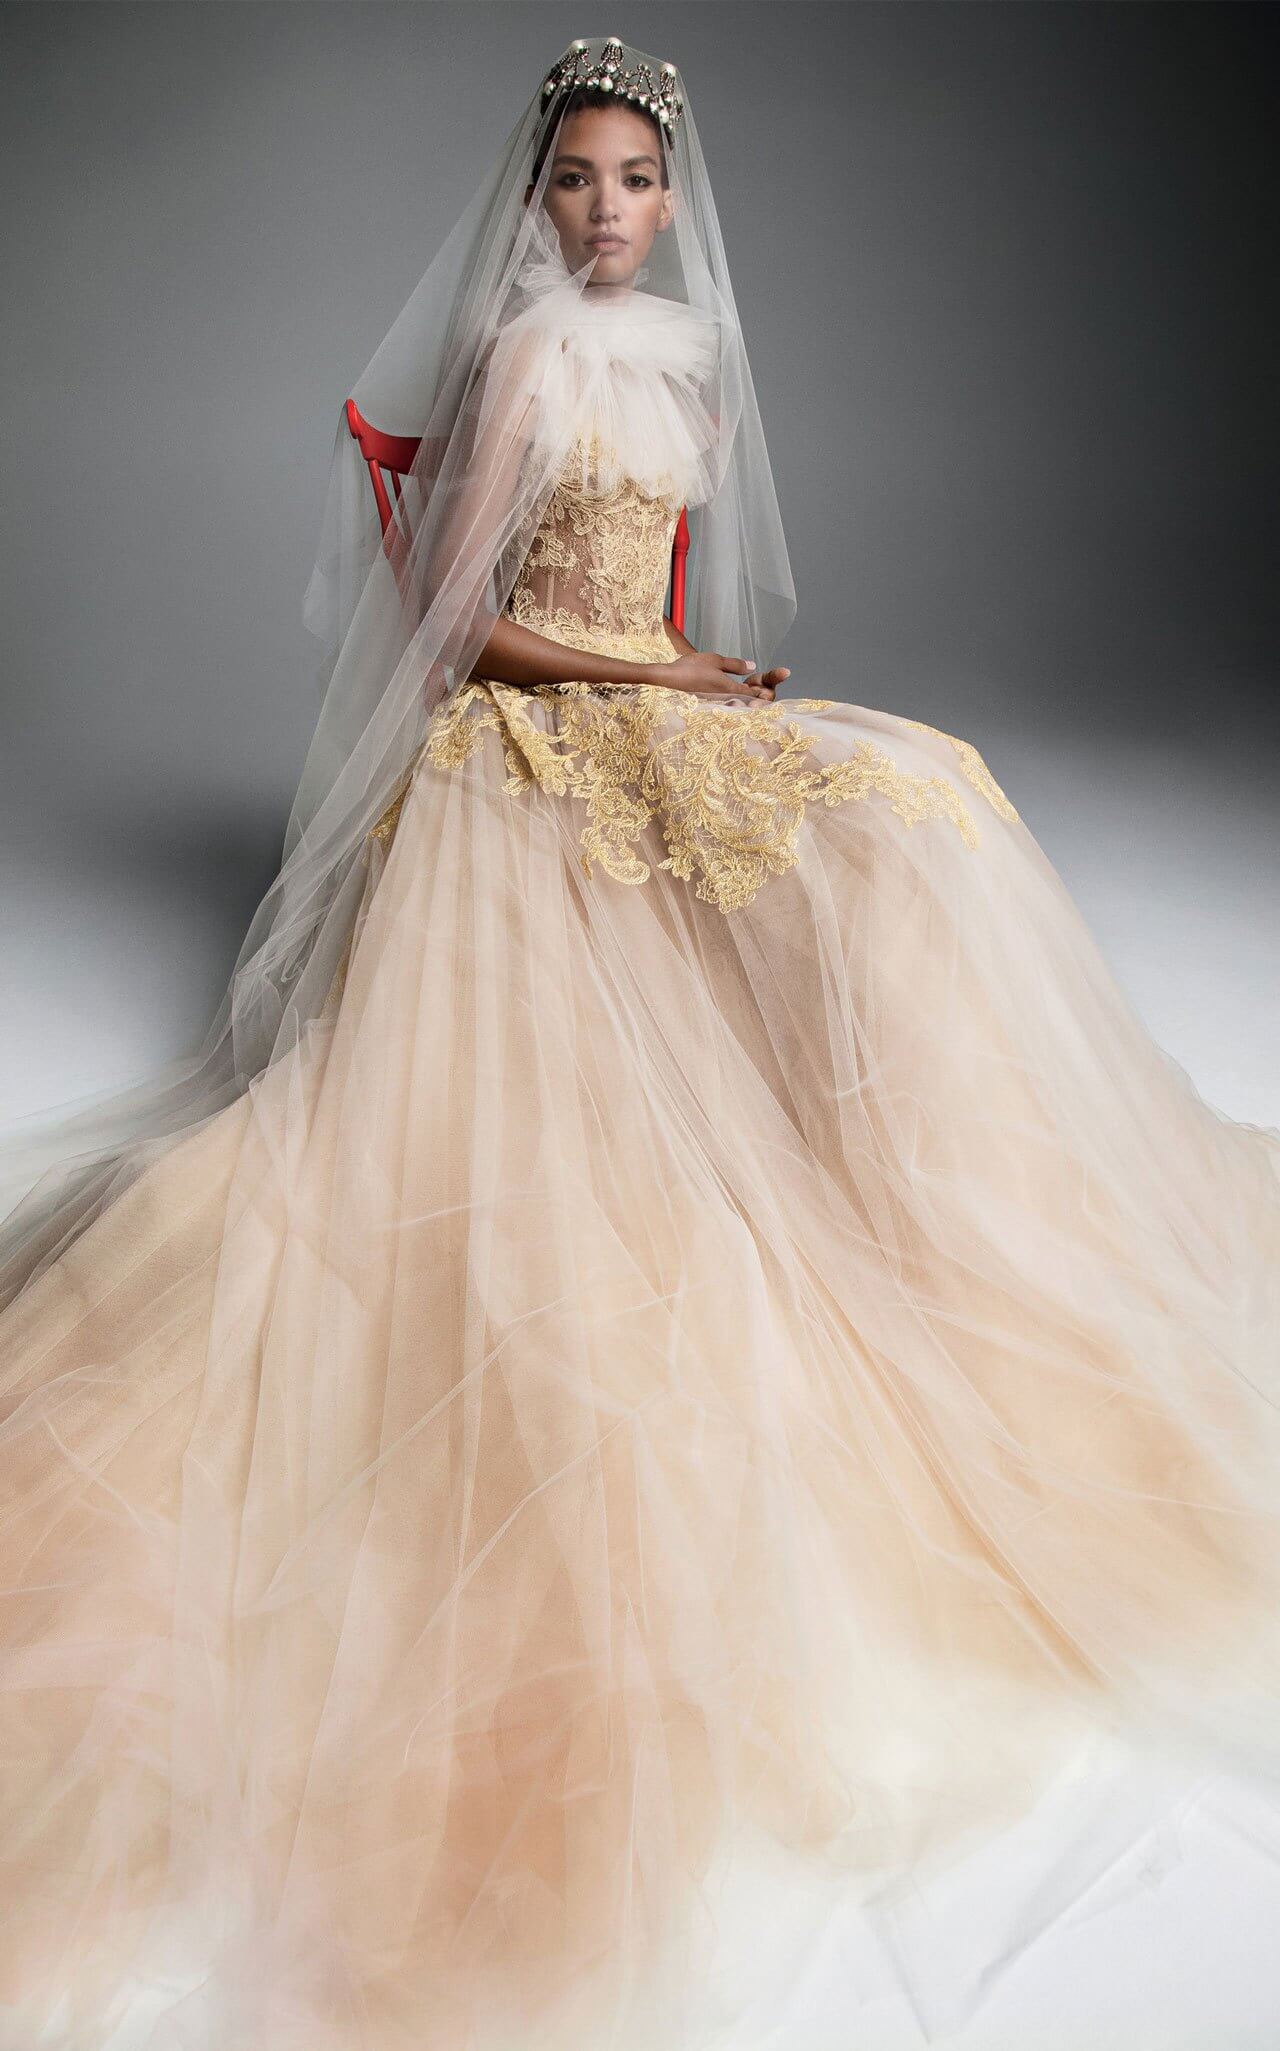 2019 Will See Gold Wedding Dresses Walk Down the Aisle